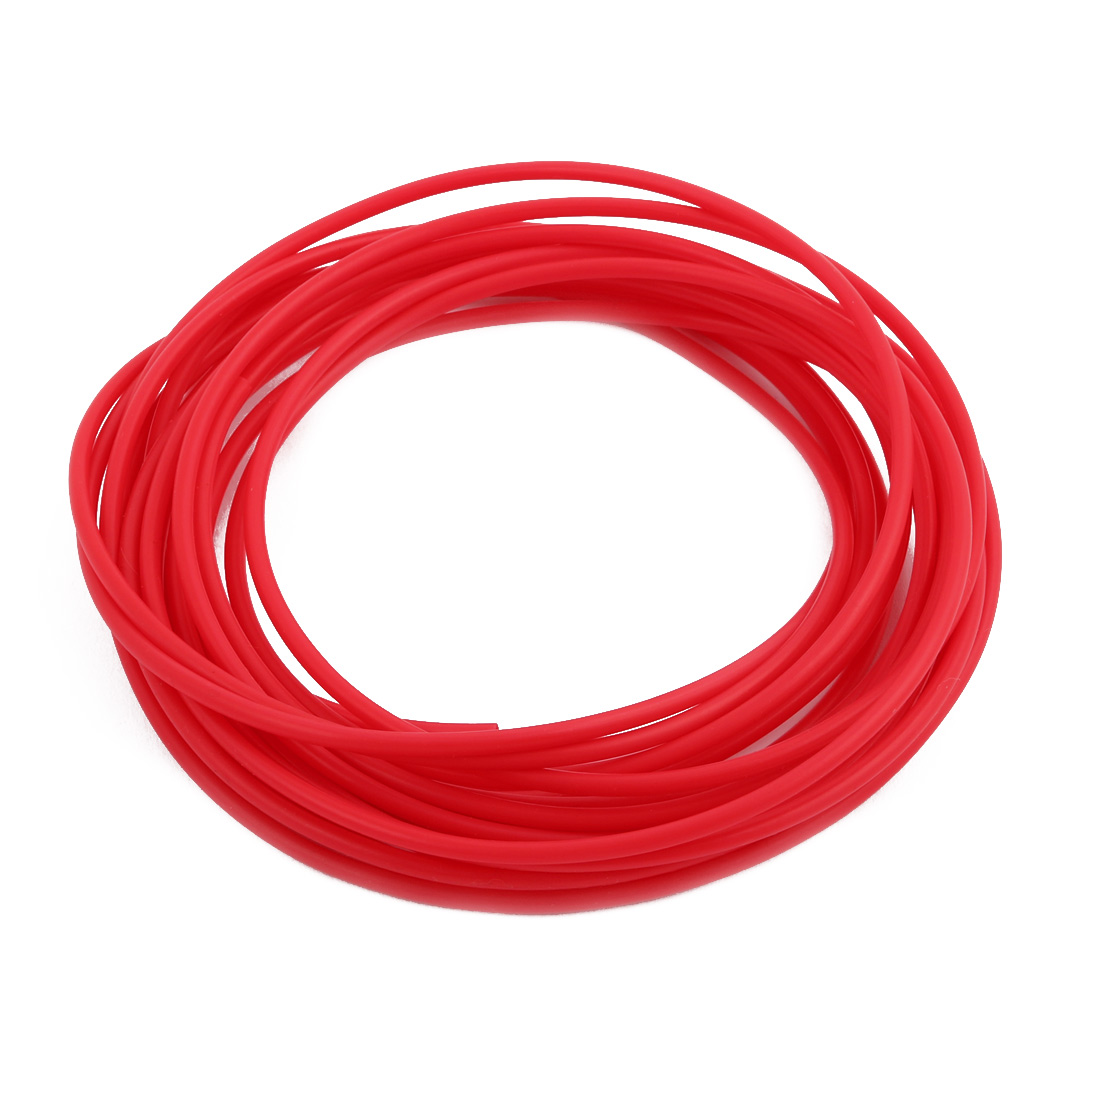 2.41mmx2.81mm PTFE Resistant High Temperature Red Tubing 5 Meters 16.4Ft